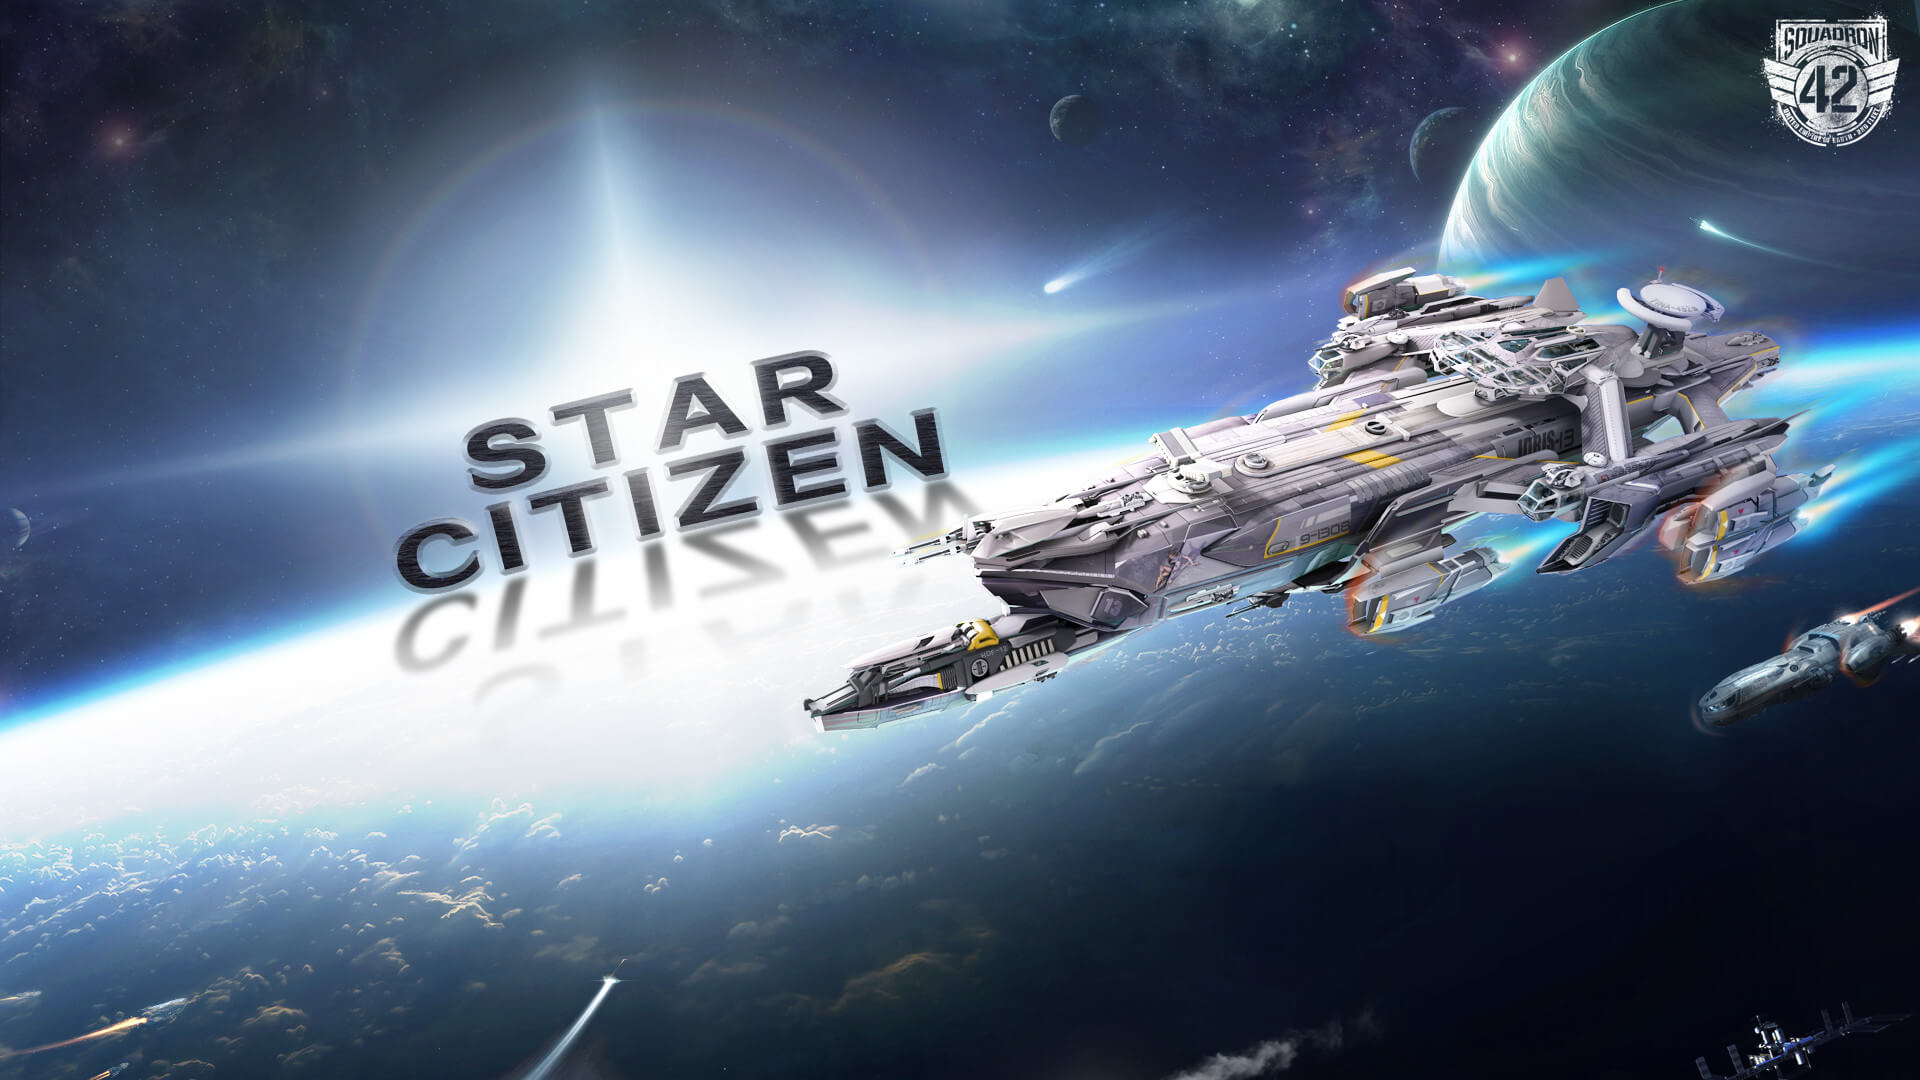 Check Star Citizen System Requirements